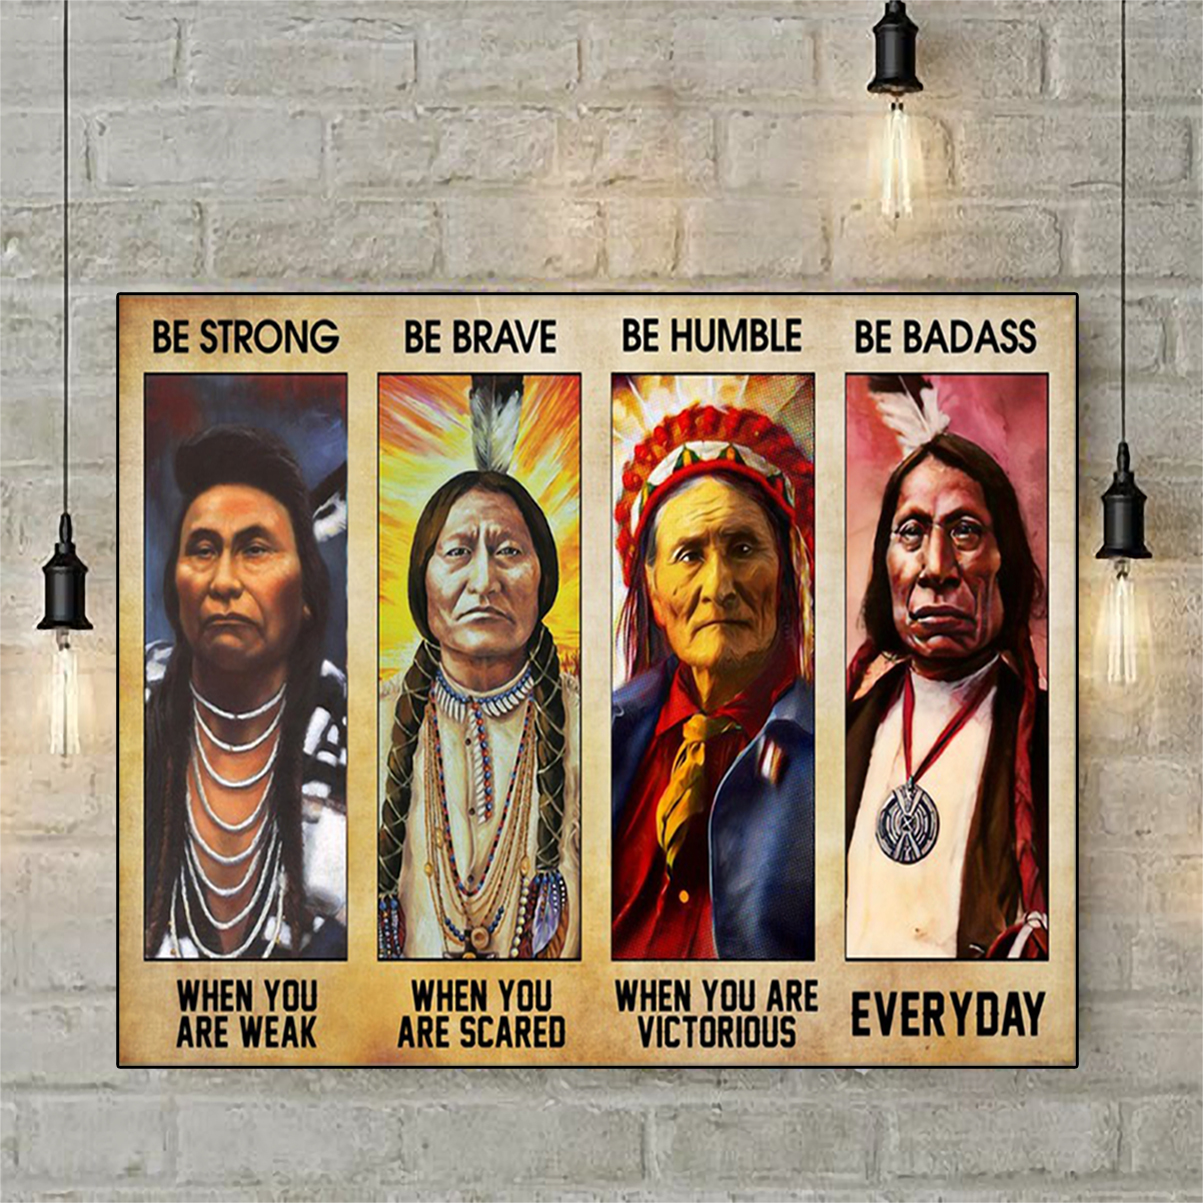 Native american be strong be brave be humble be badass poster A1